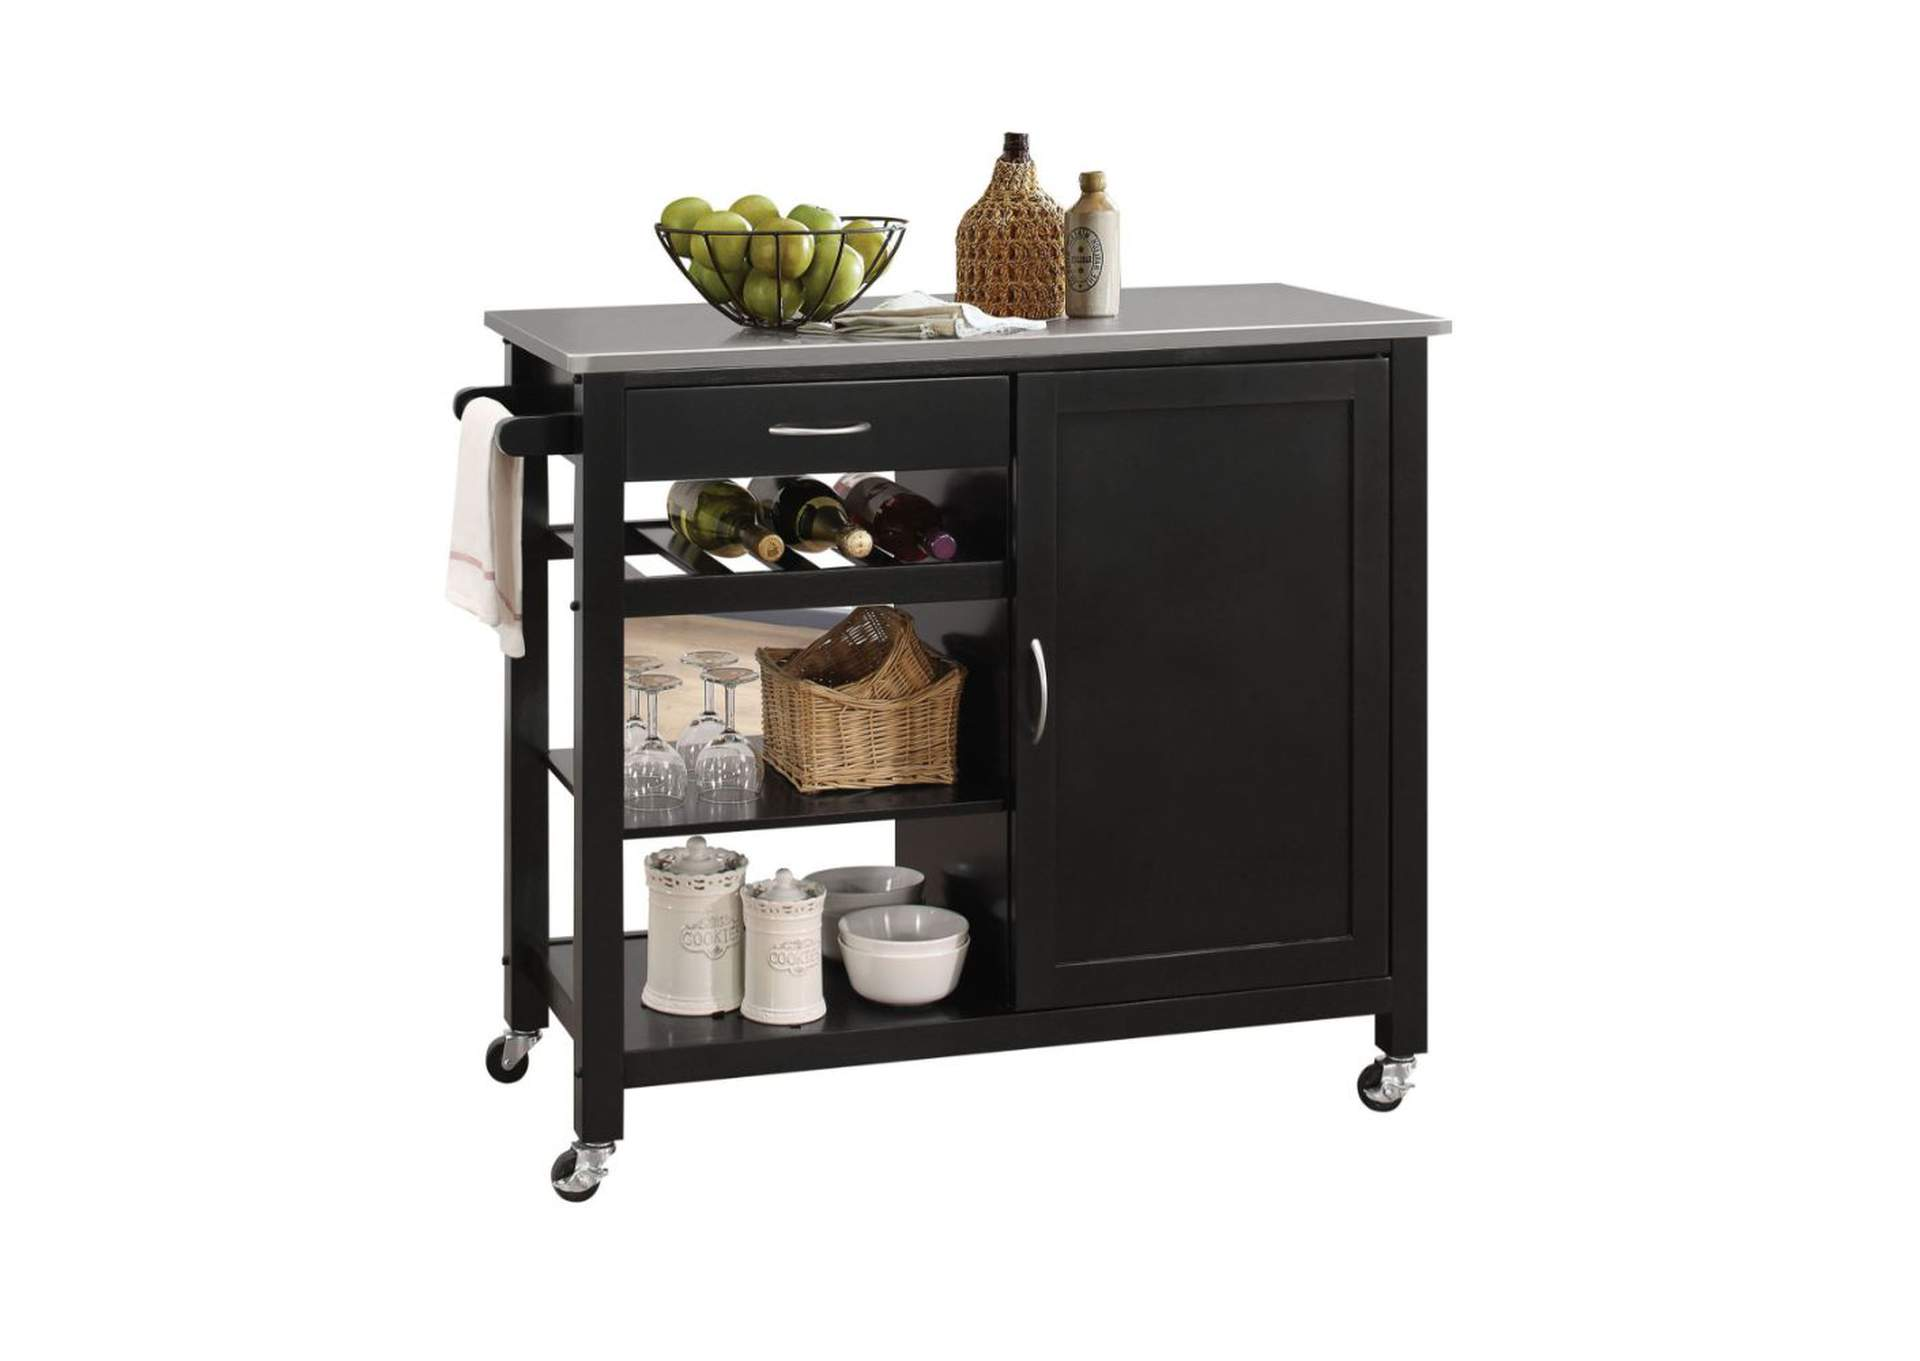 Ottawa Stainless Steel/Black Kitchen Cart,Acme